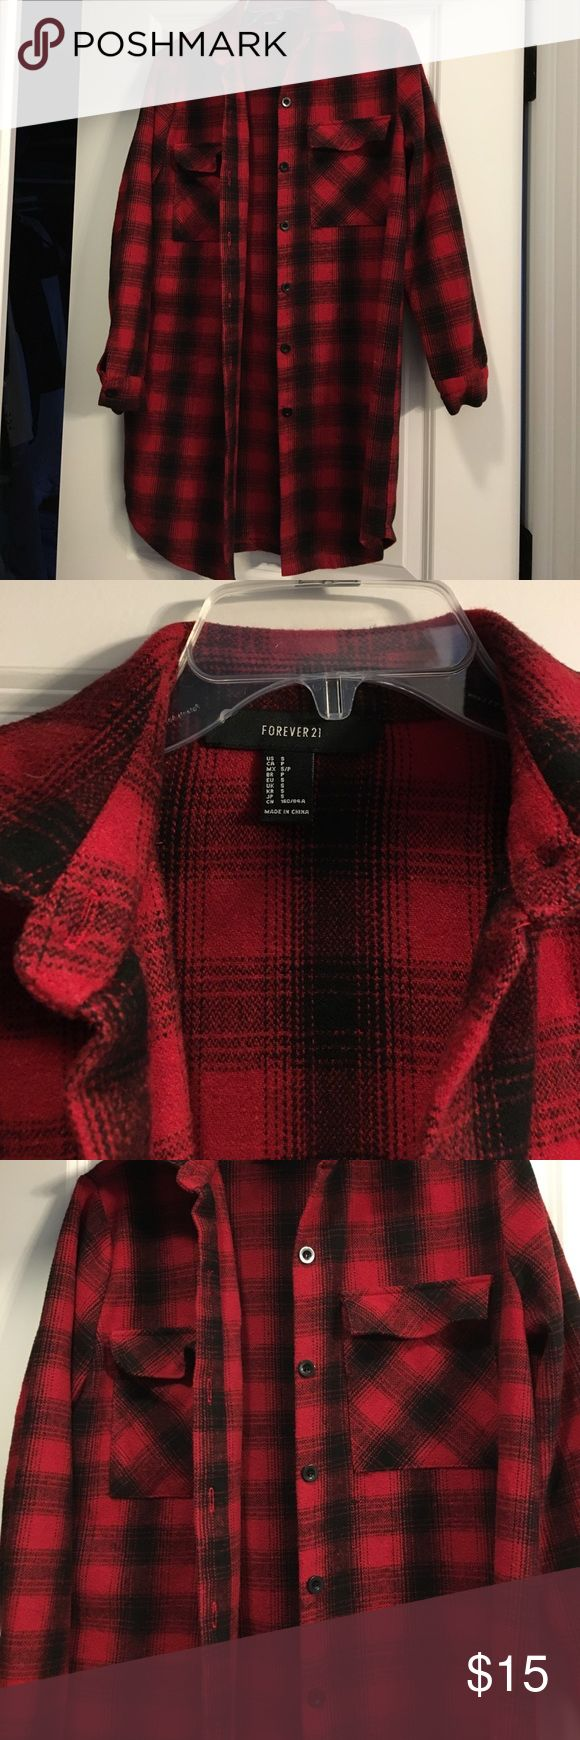 Forever 21 thick flannel shirt dress size S Forever 21 thick flannel shirt dress size S in excellent condition. No signs of wear, no stains or any kind of damage. It's a thicker flannel material, great for colder days. Forever 21 Dresses Mini